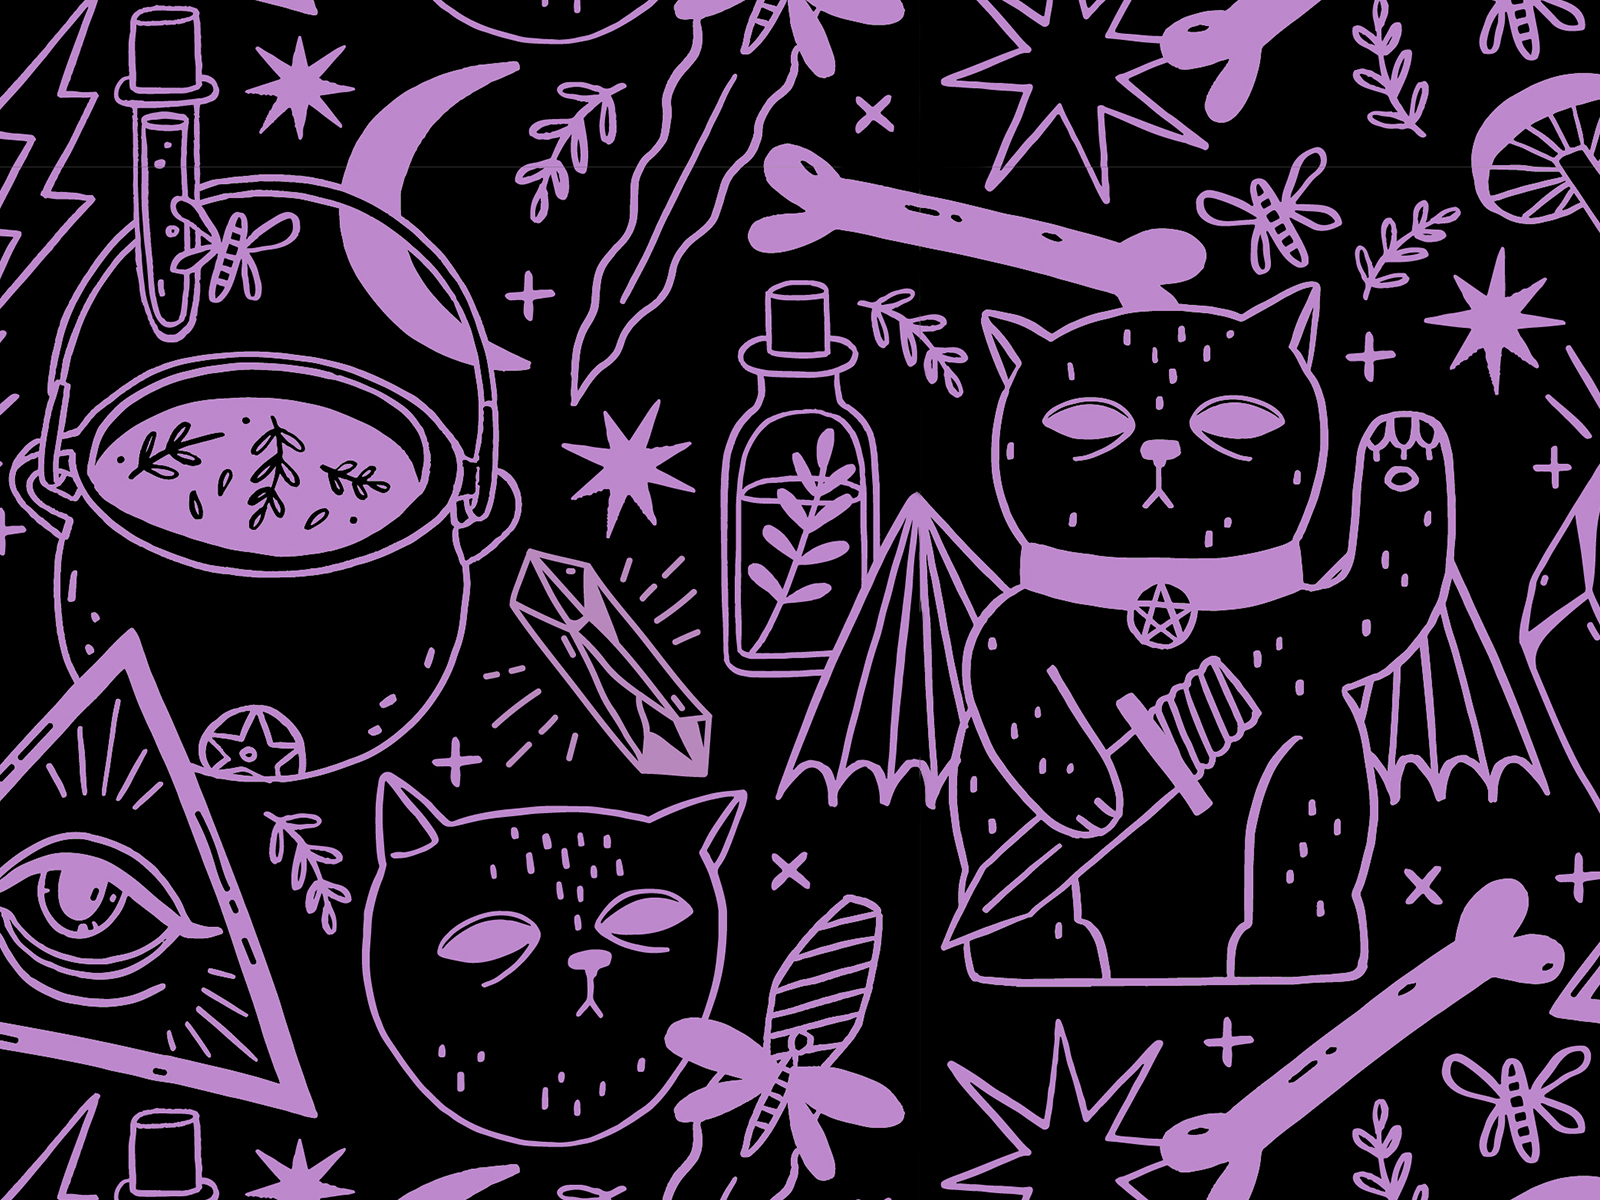 Witchy Pattern By Polina On Dribbble